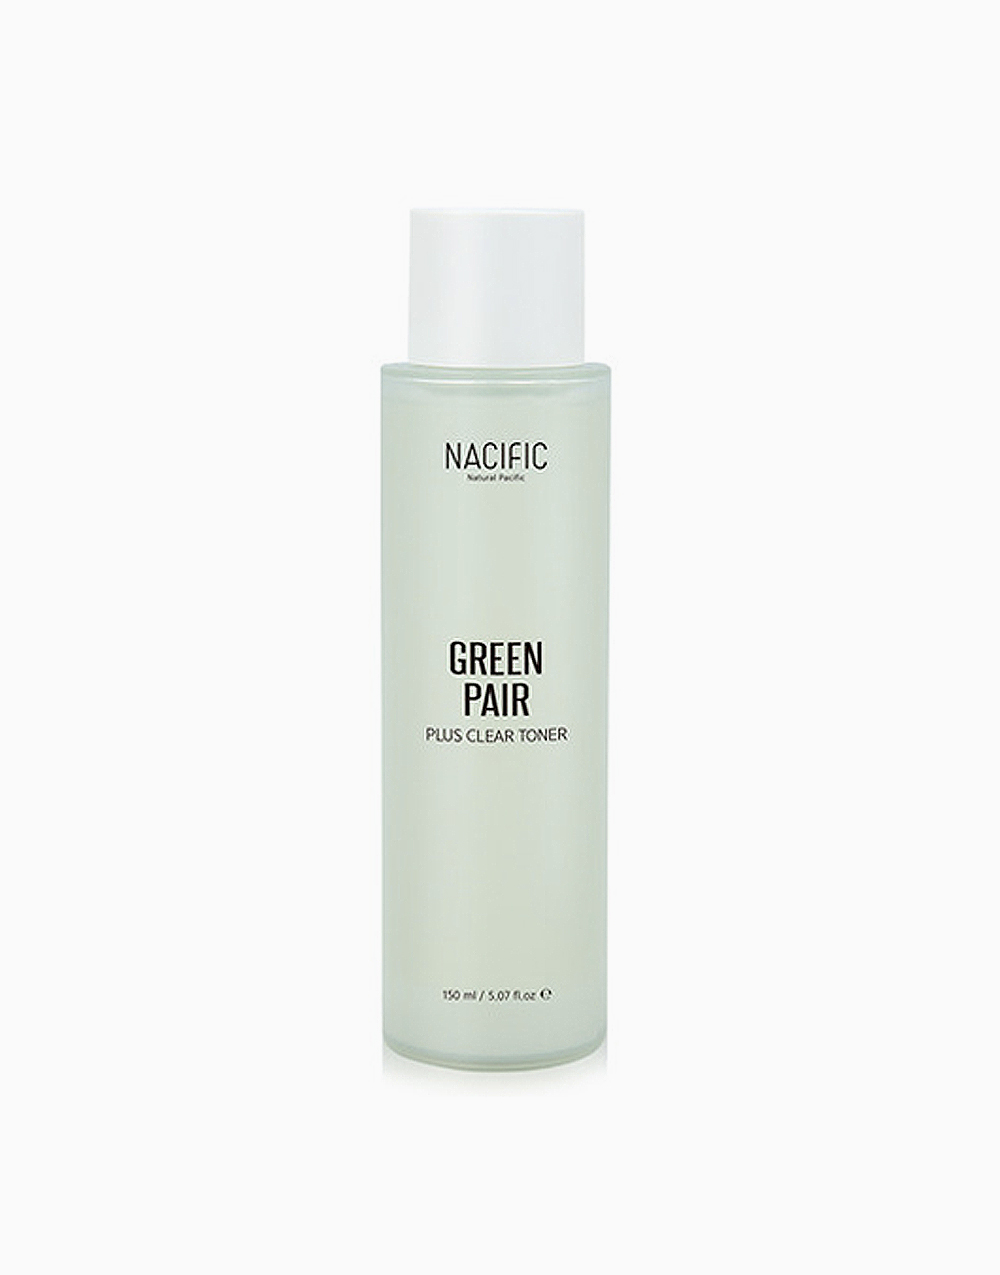 Green Pair Plus Clear Toner by Nacific